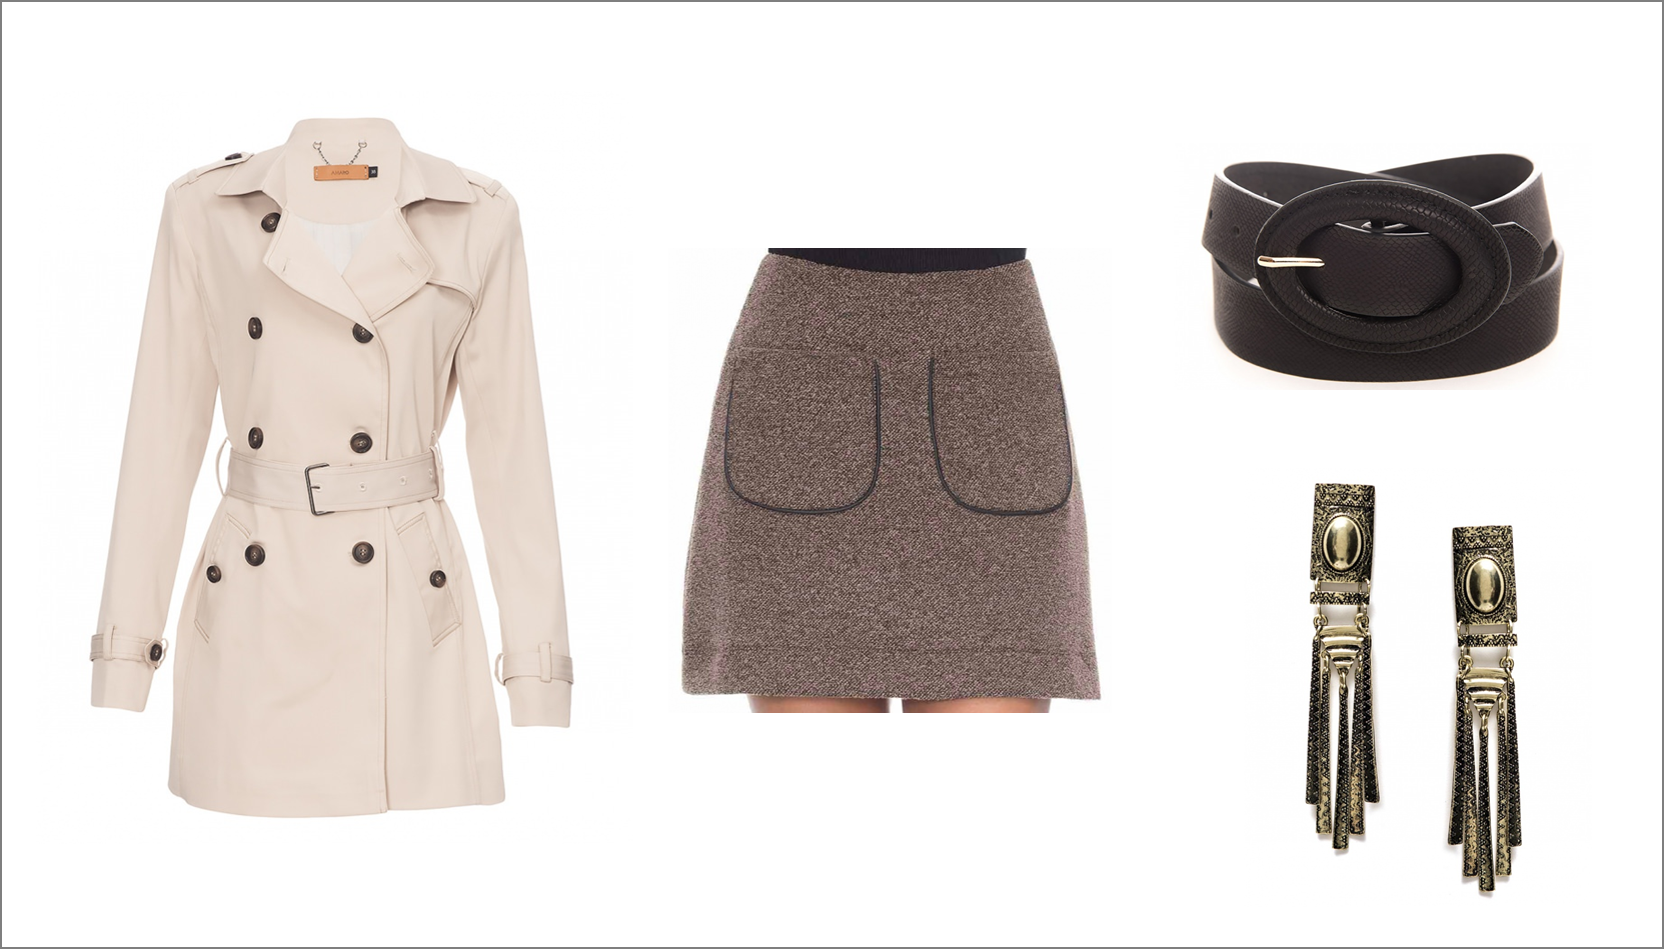 como-usar-trench-coat-look-noite-blog-van-duarte-2